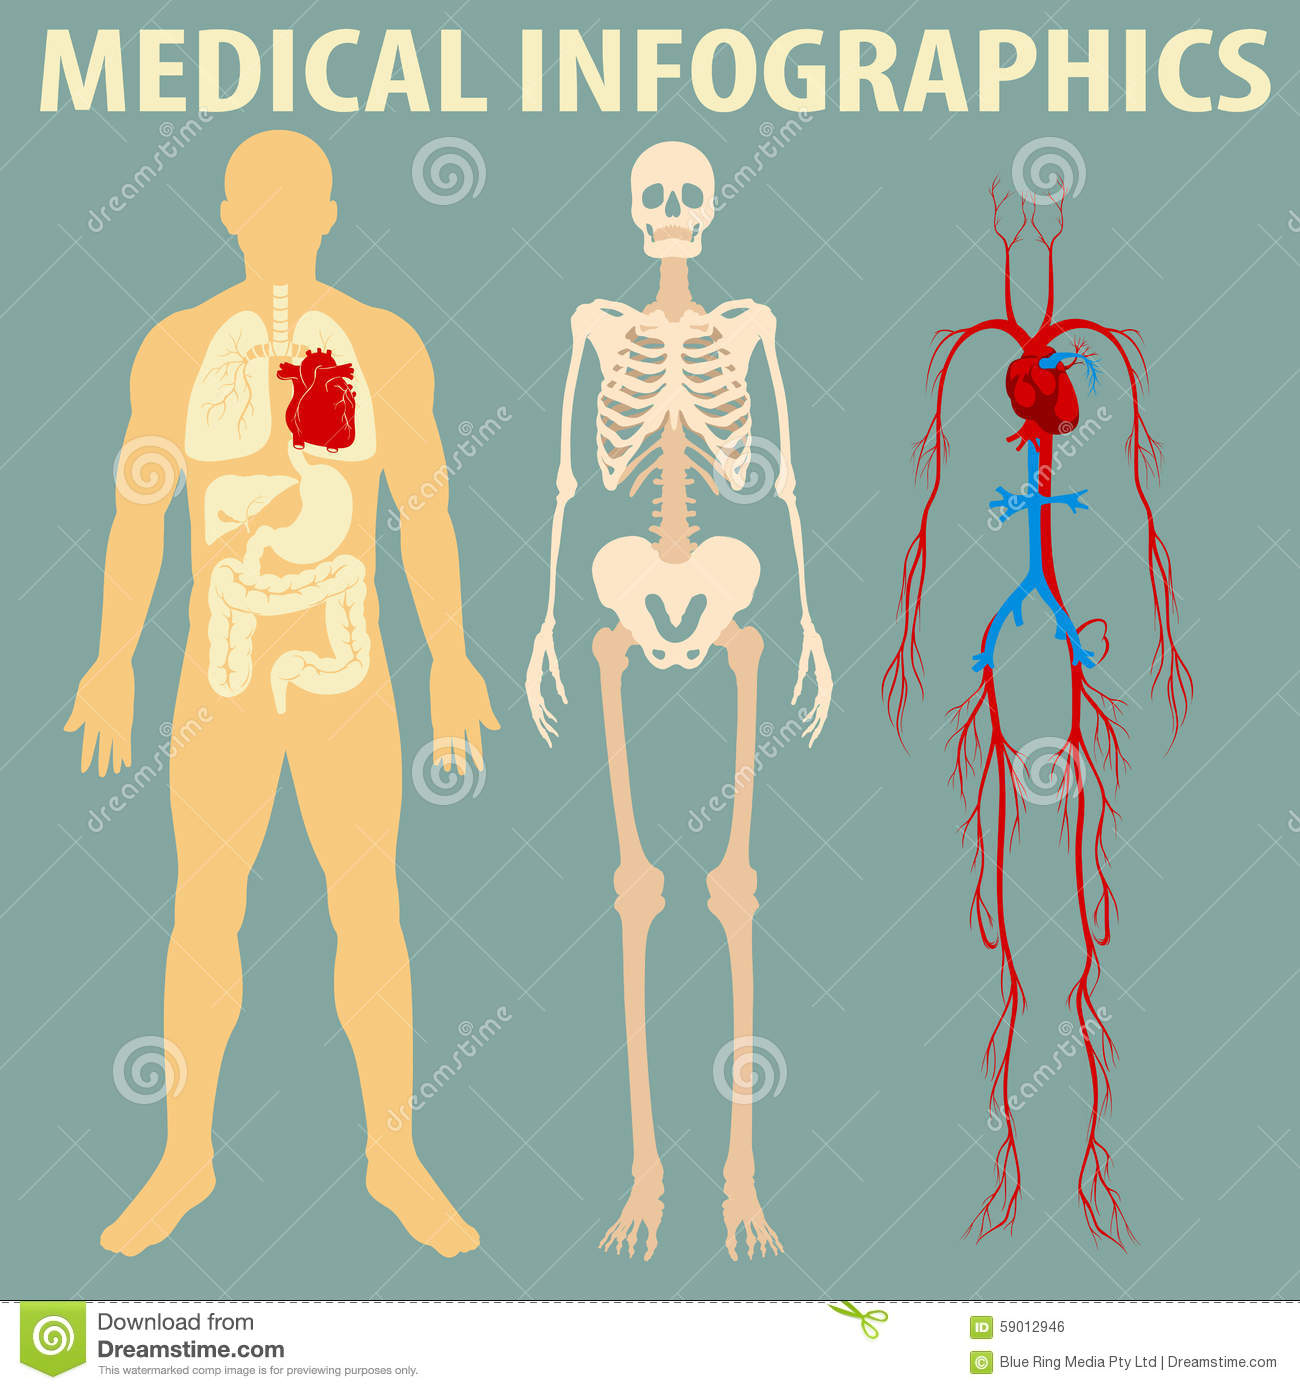 Medical Infographic Human Body Stock Vector Illustration Of